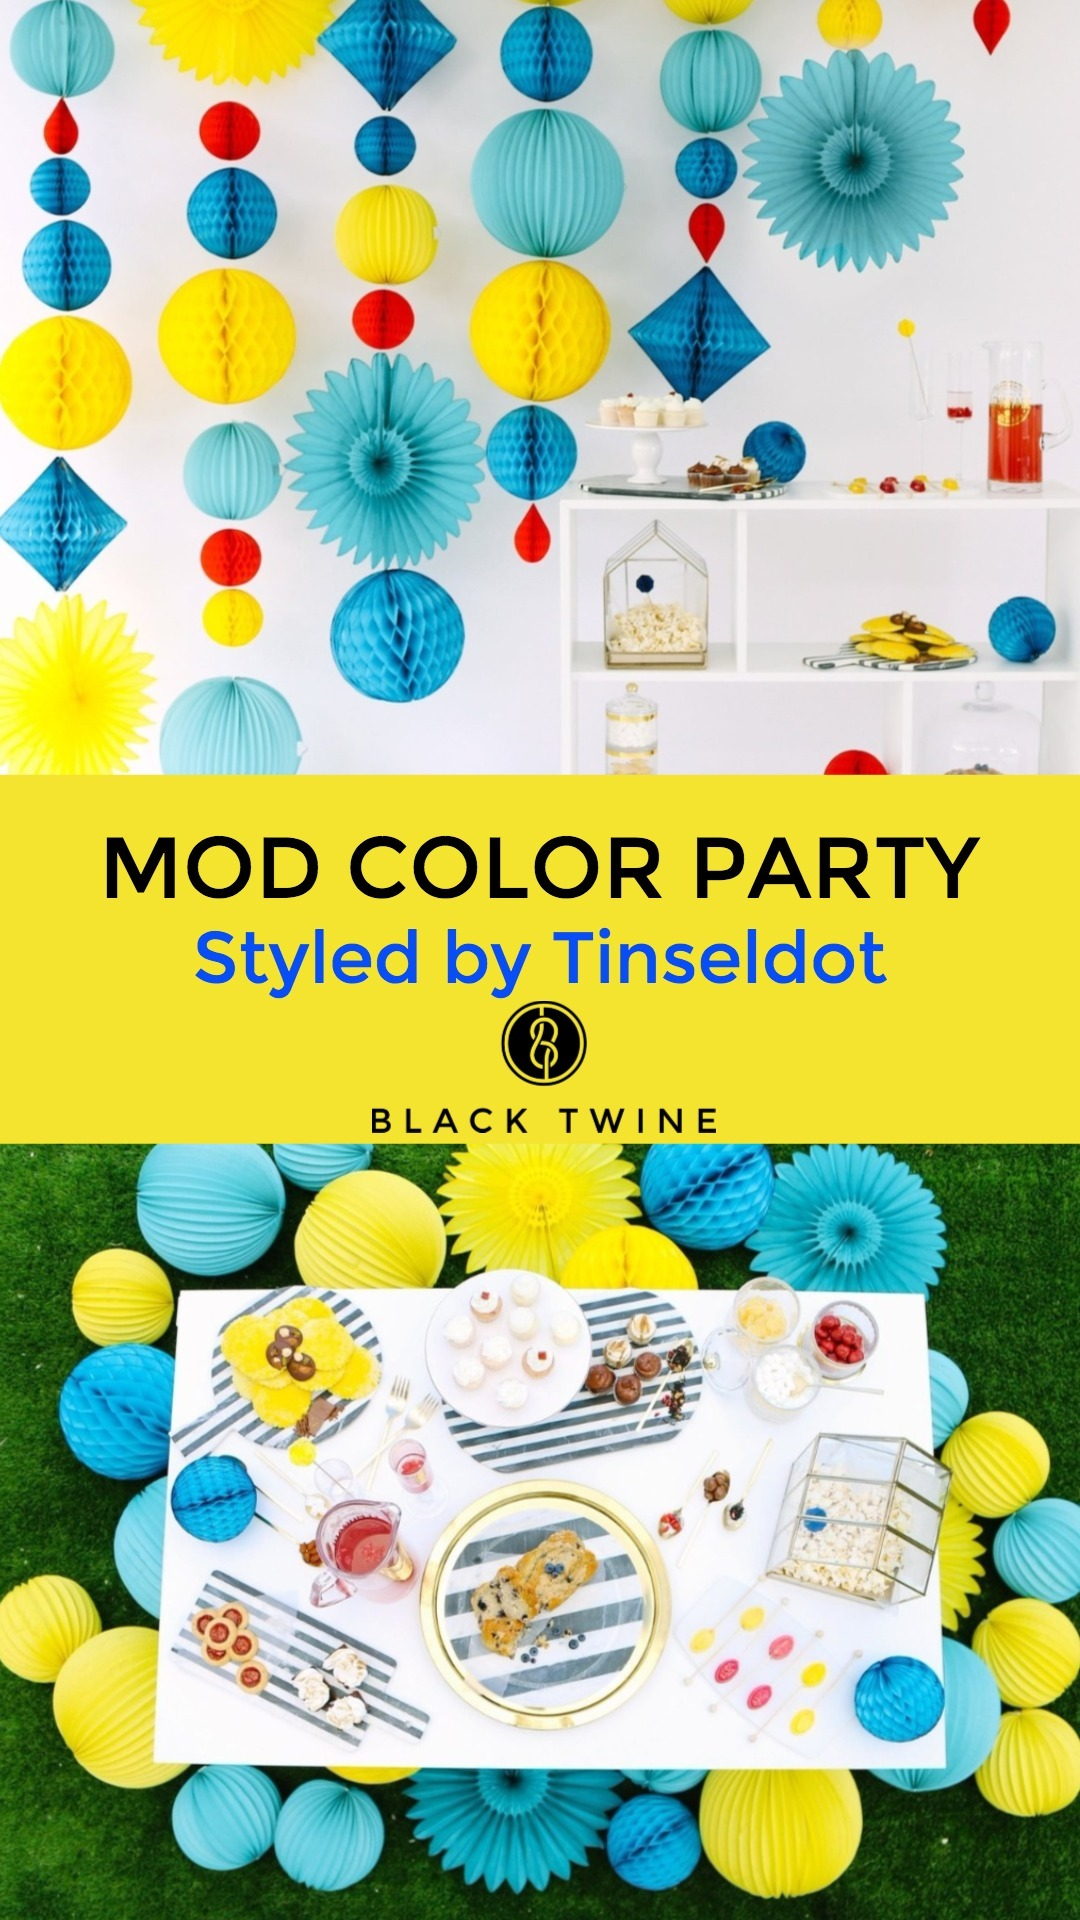 Mod Color Party Styled by Tinseldot | Black Twine